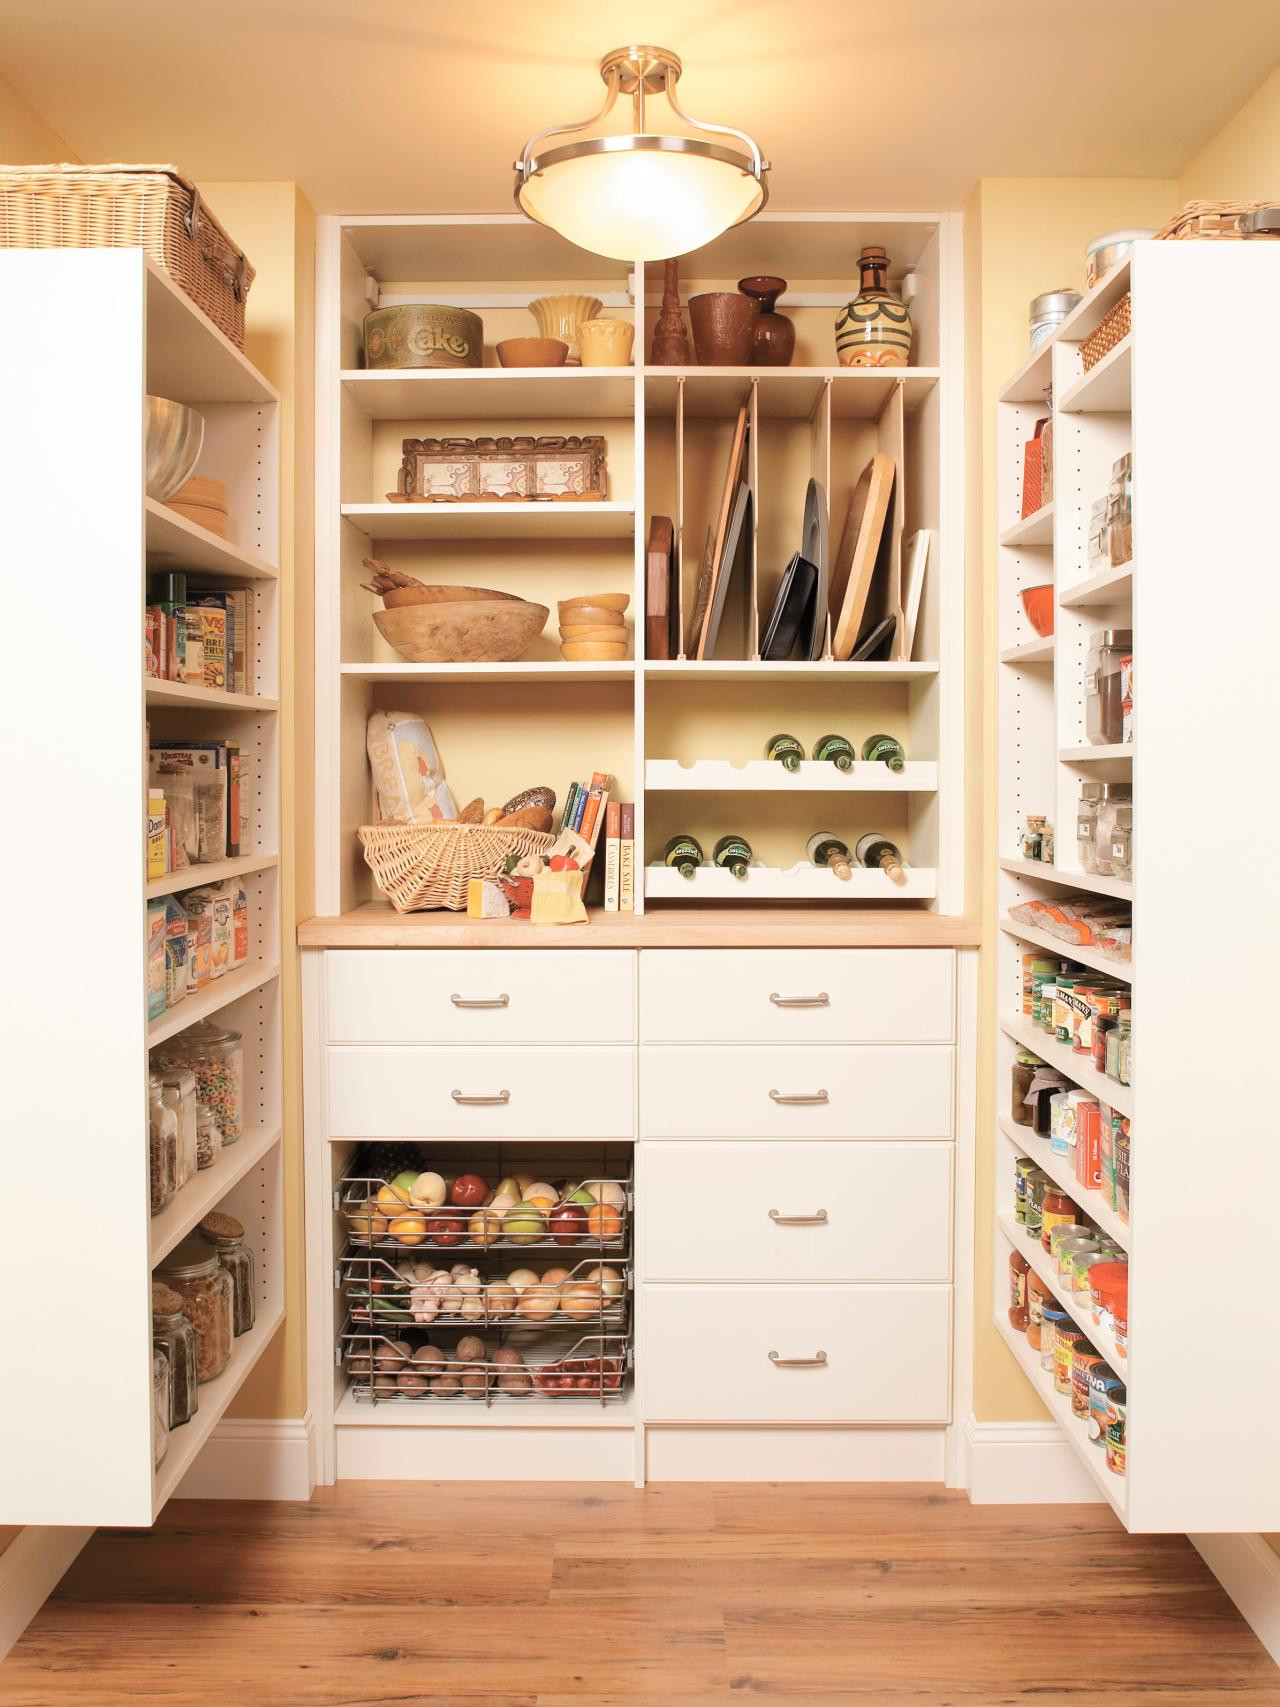 Best ideas about Pantry Closet Ideas . Save or Pin 51 of Kitchen Pantry Designs & Ideas Now.